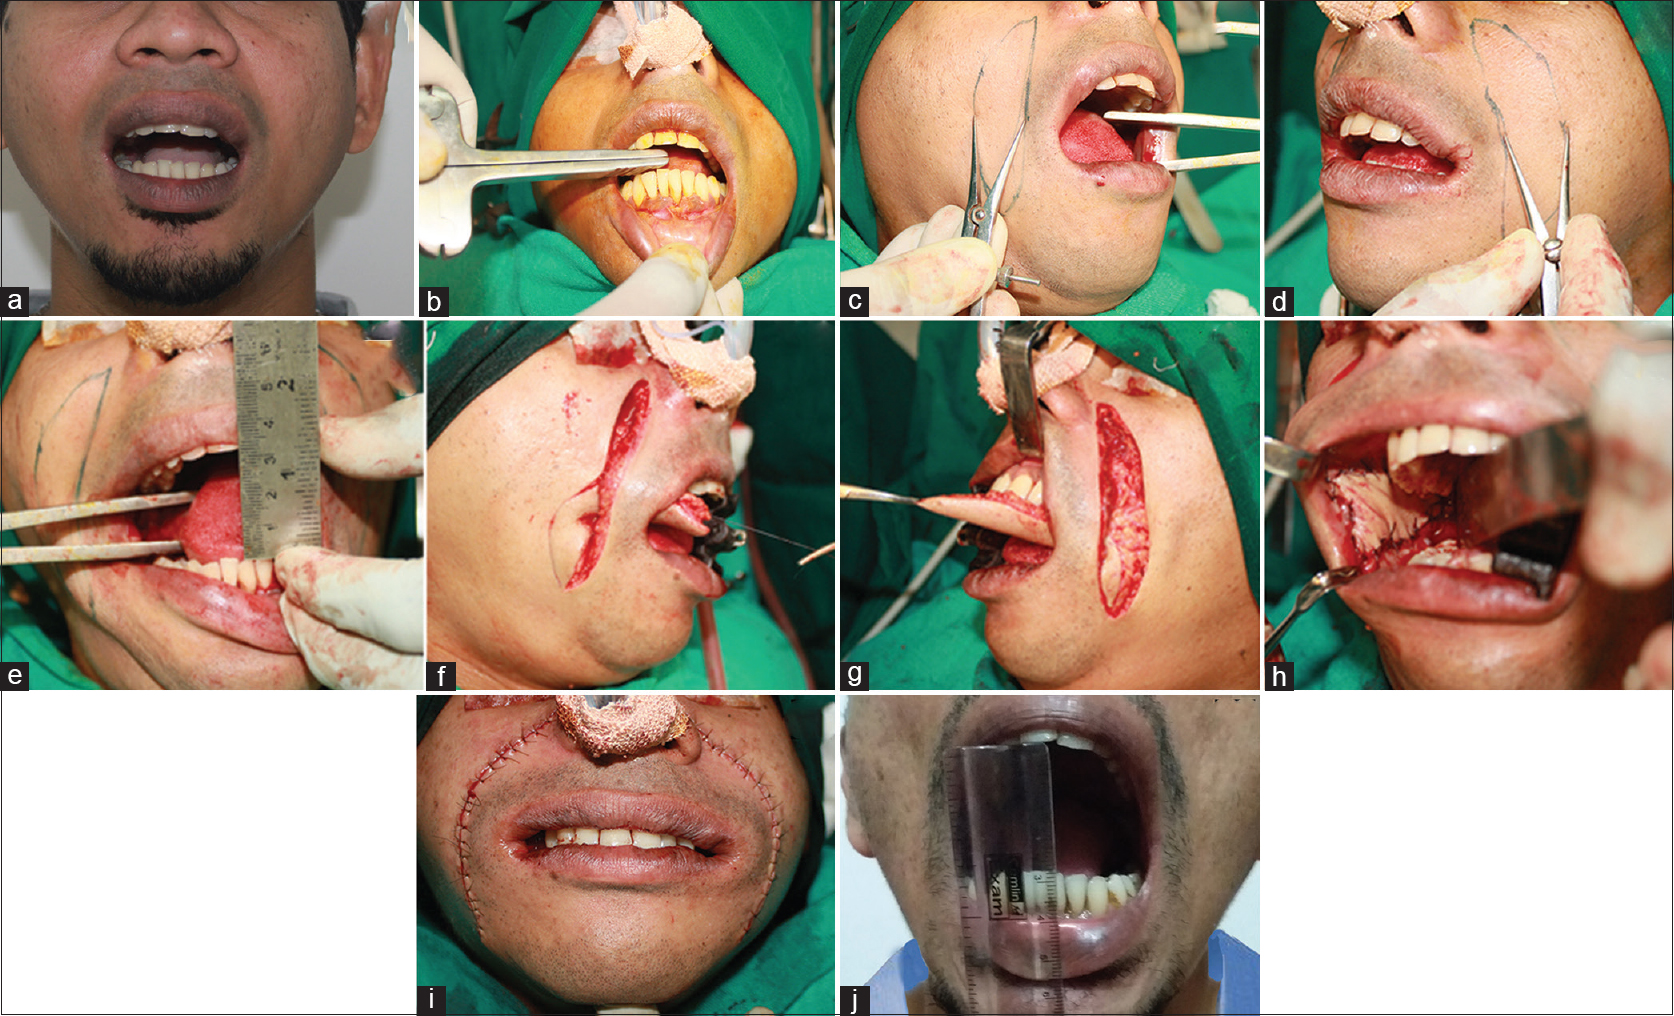 Figure 1: (a) Preoperative mouth opening, (b) intraoperative mouth opening before surgery, (c and d) marking of bilateral nasolabial flap, (e) increase in mouth opening after lease of fibrotic bands, (f and g) nasolabial flap transfer bilaterally, (h) intraoral suturing of flap, (i) primary closure, (j) postoperative increase in significant mouth opening